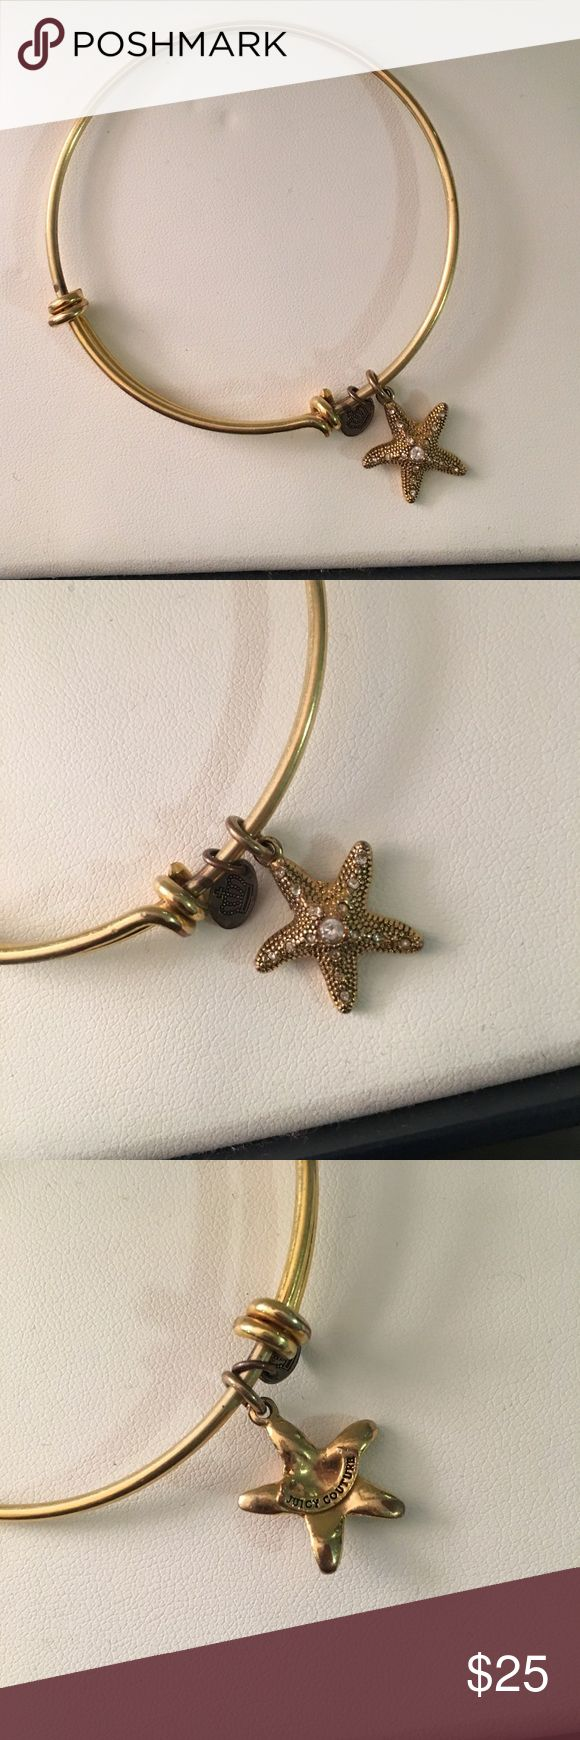 Juicy Couture gold starfish bangle Gently used Juicy Couture gold starfish bangle. Looks great alone or in a stack! Juicy Couture Jewelry Bracelets